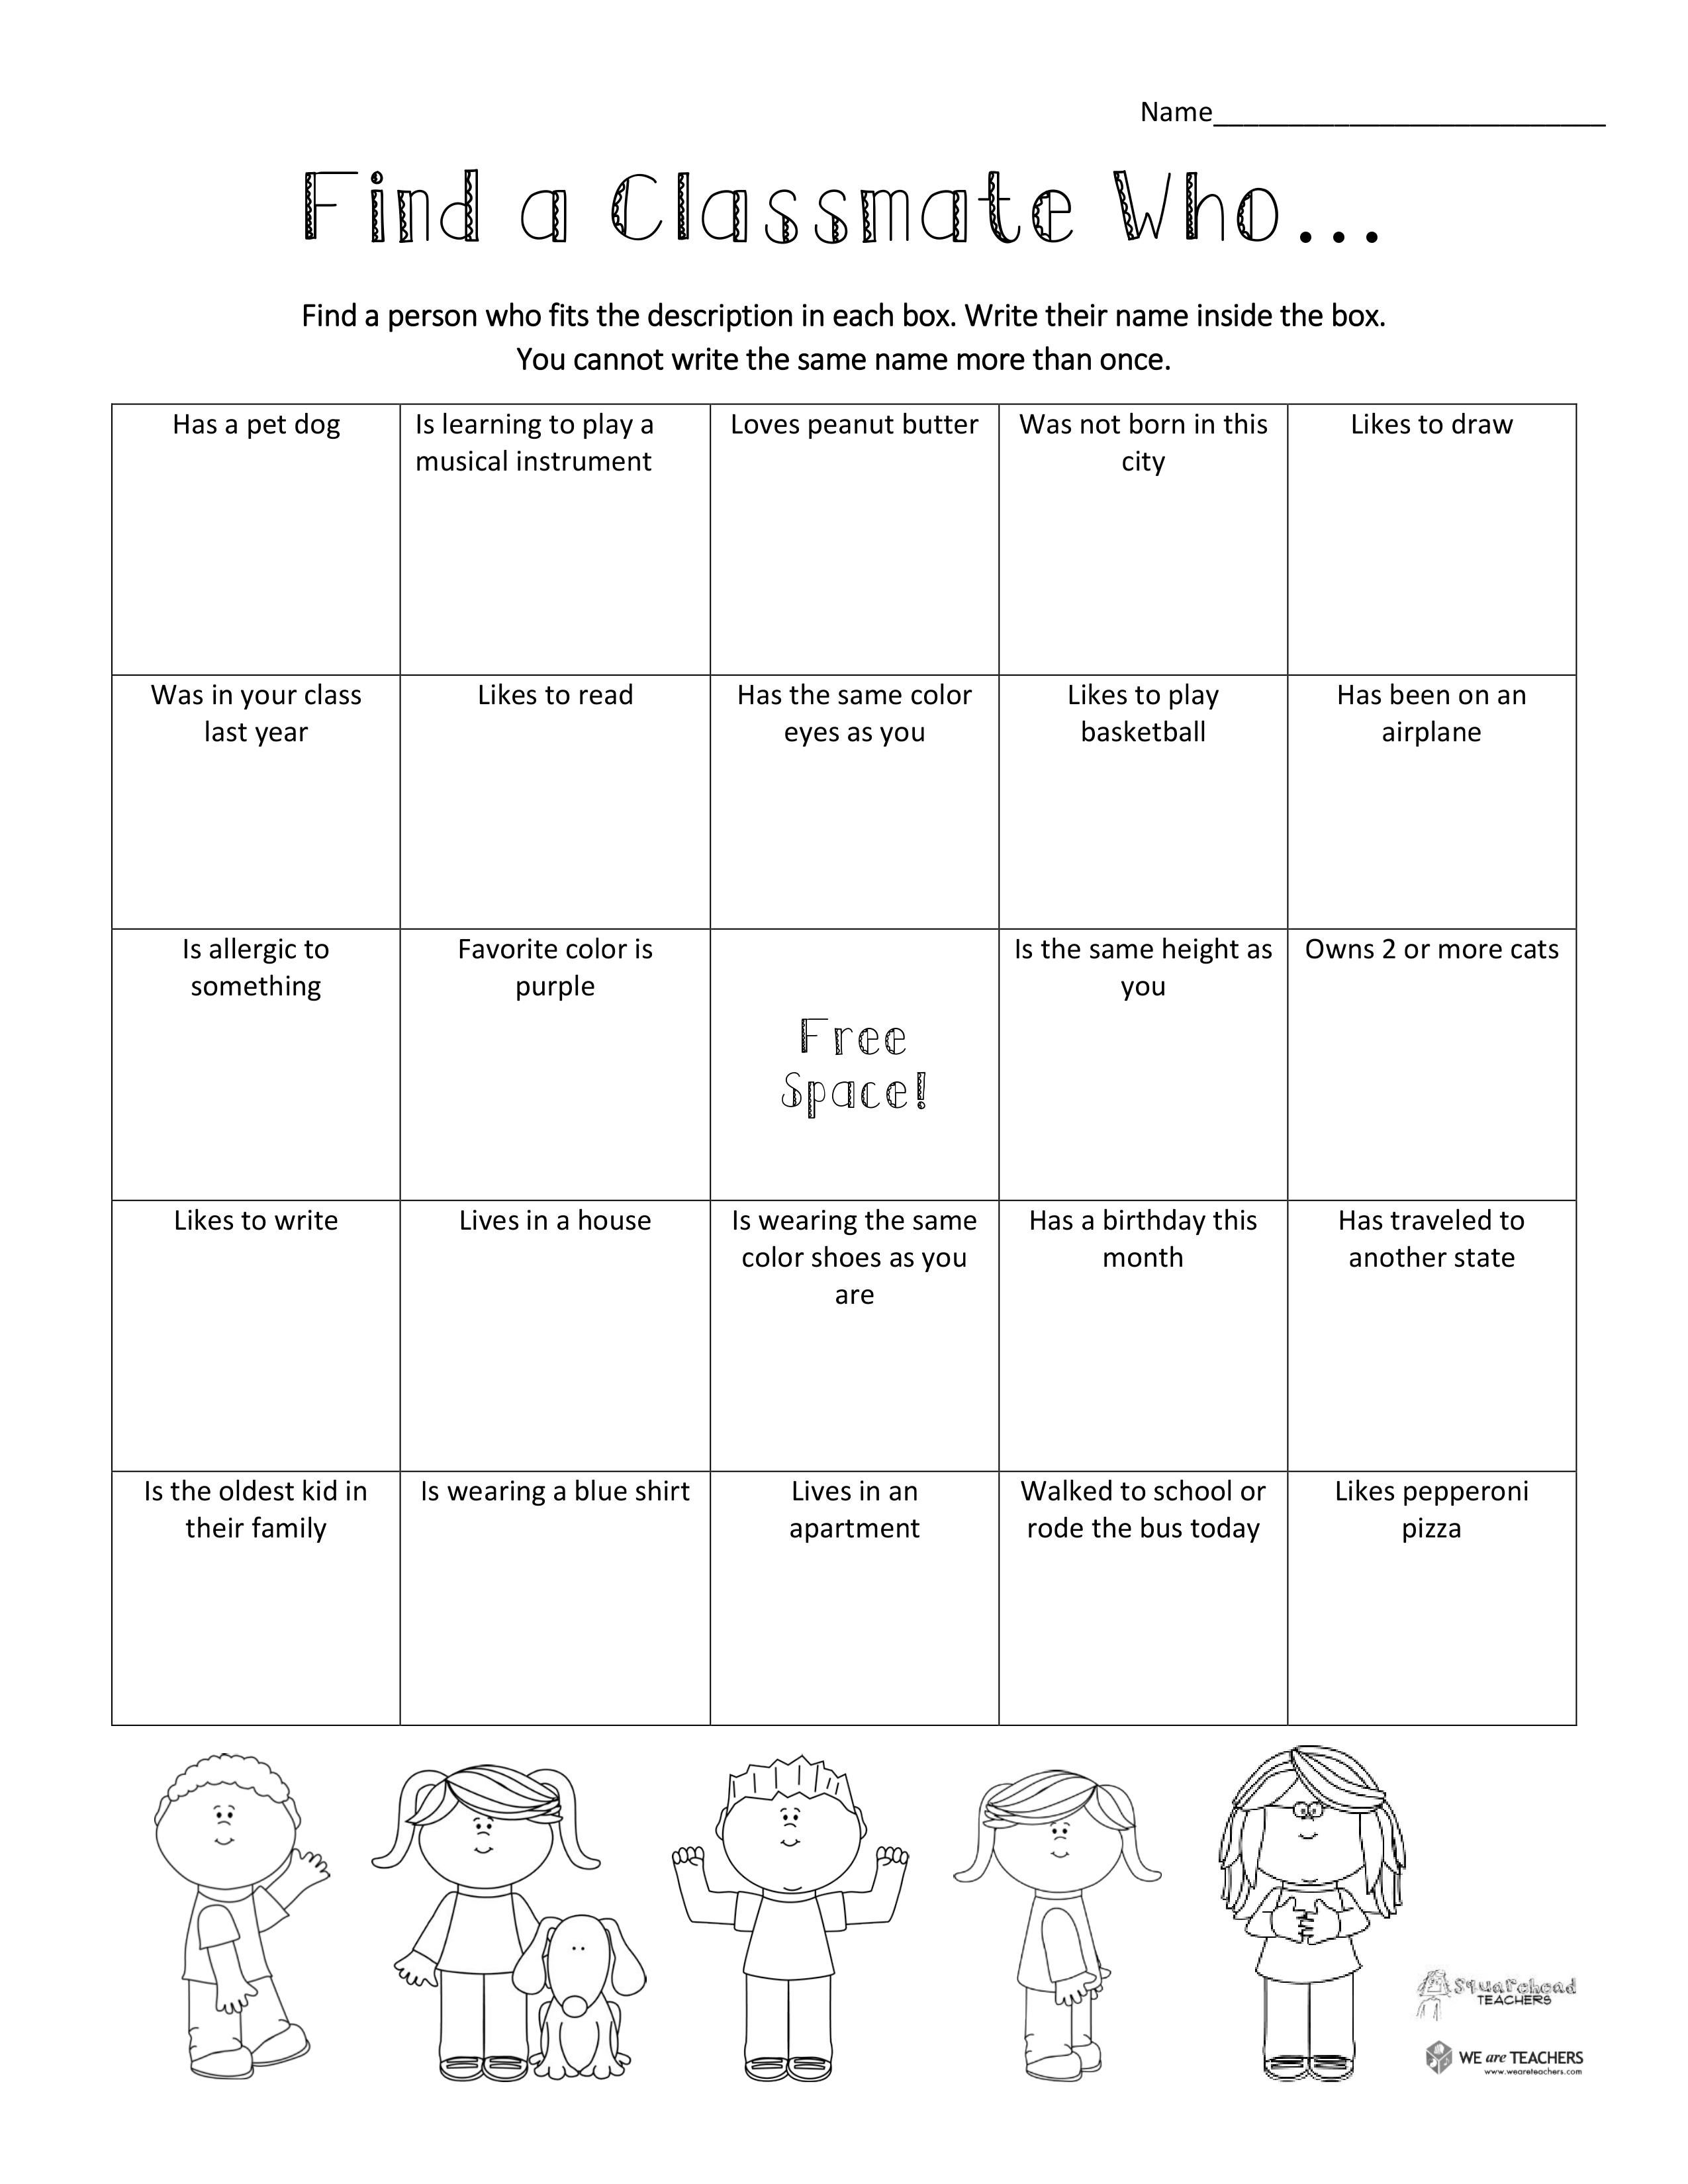 Free Printable Find A Classmate Who Icebreaker